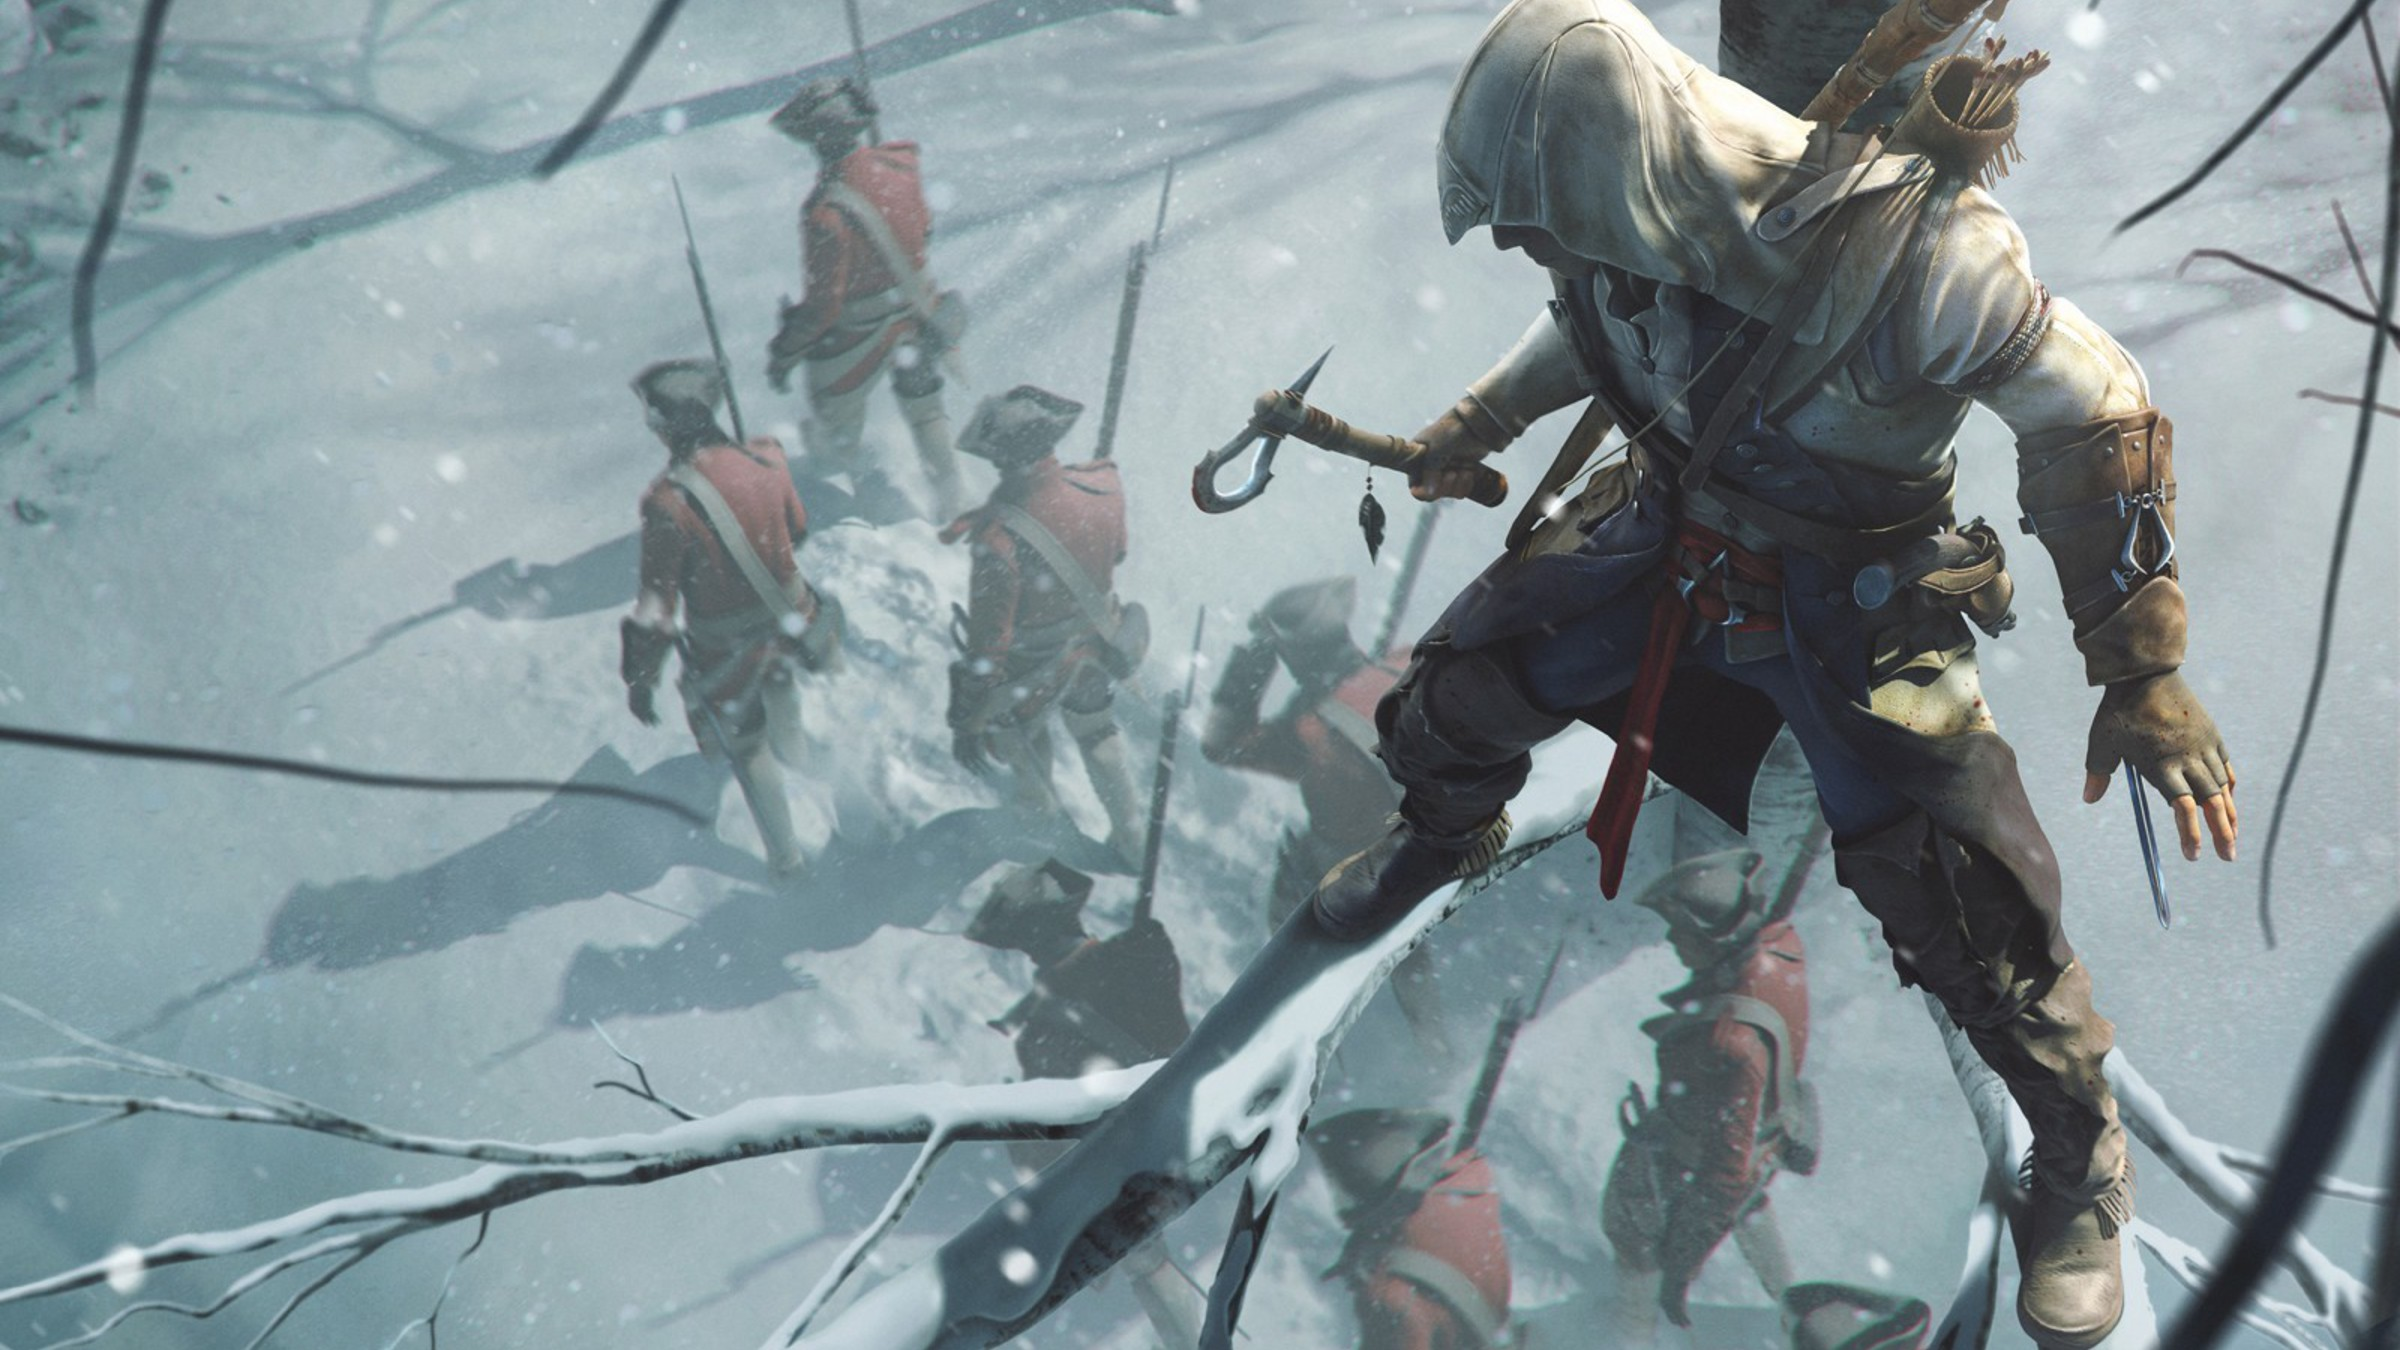 Tomahawk assassins creed 3 bow weapon connor wallpaper hd 169 2400x1350 2048x1152 voltagebd Choice Image